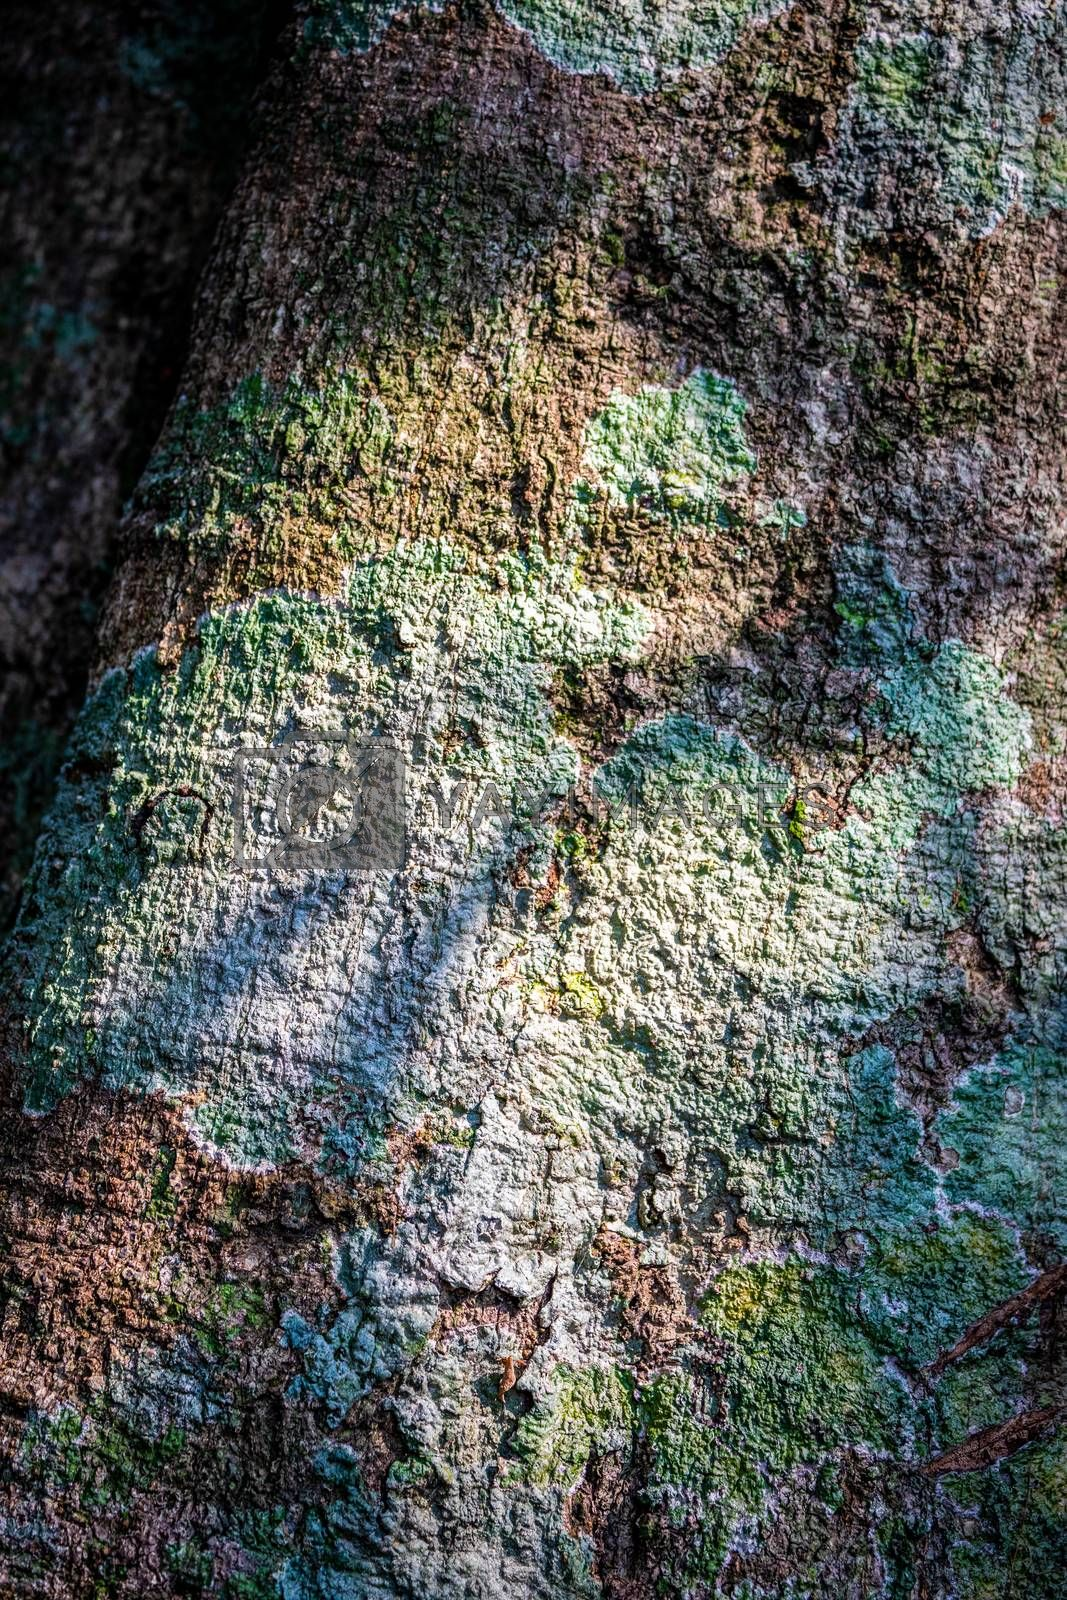 Abstract nature surface of rough tree bark in different colors from dry lichen touching sunlight in tropical forest.